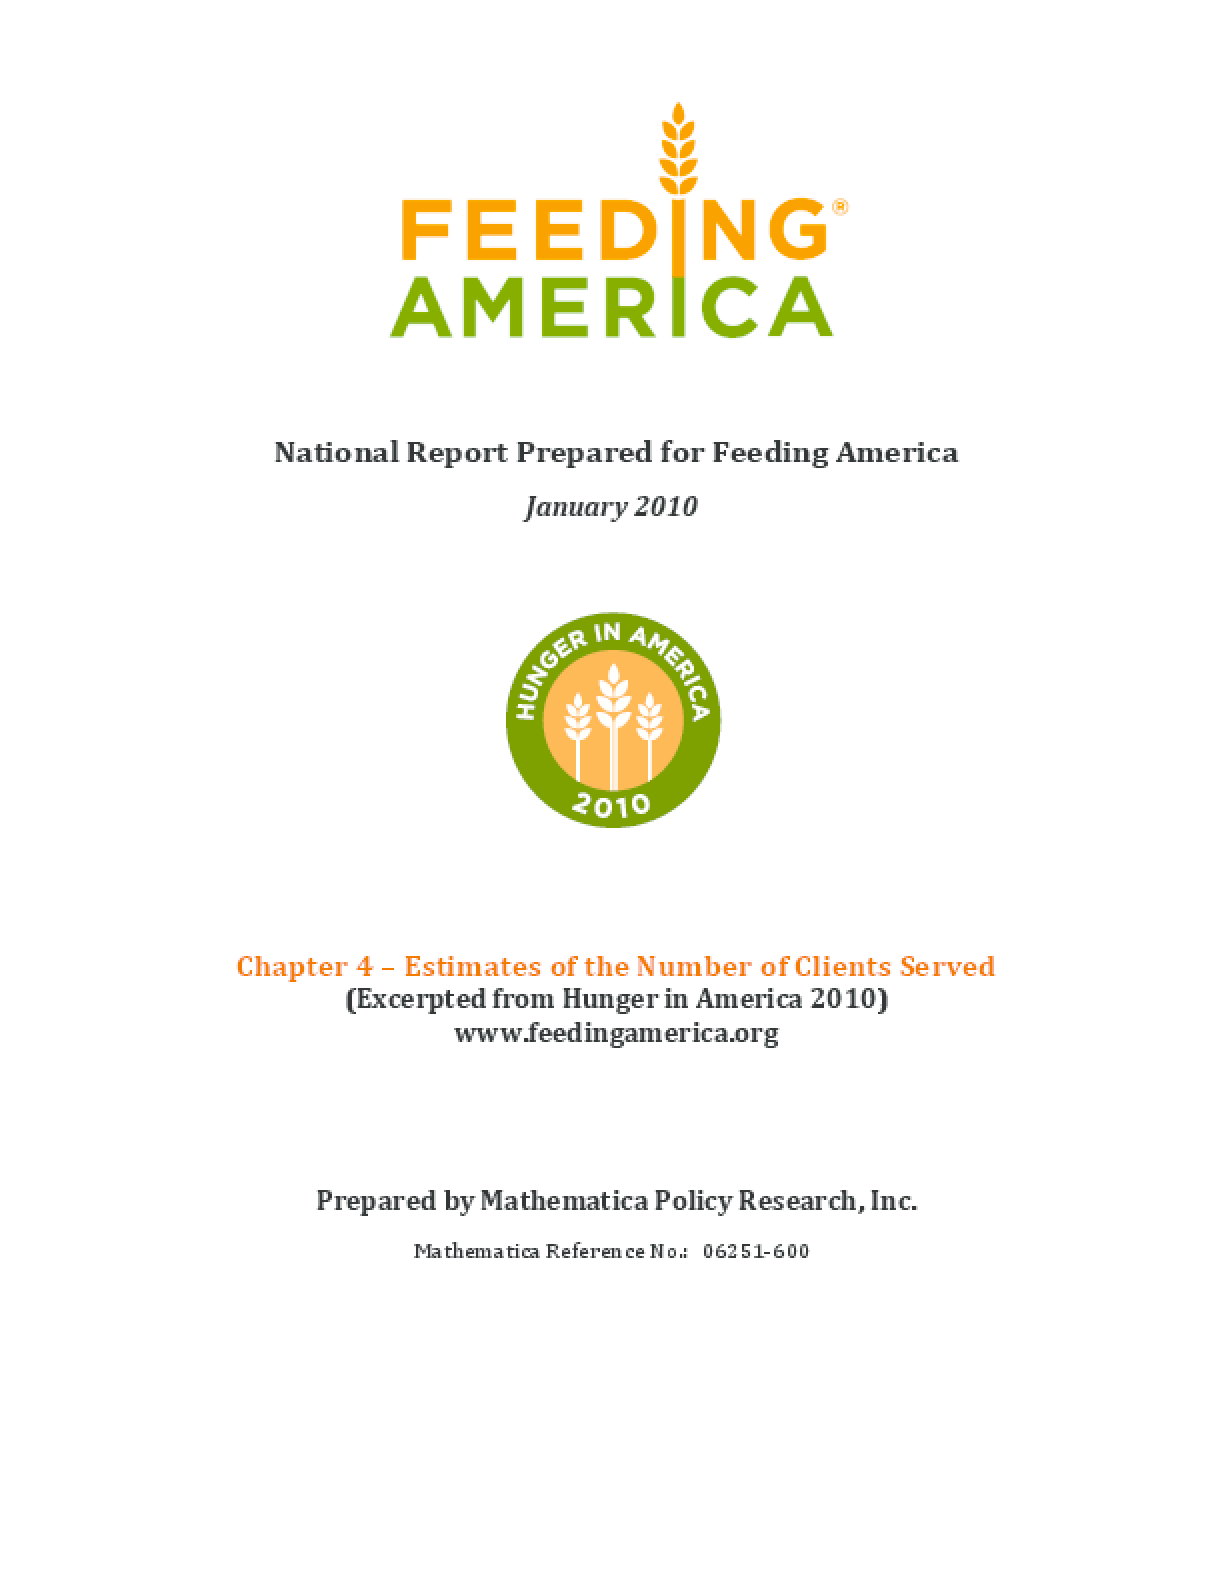 Estimates of the Number of Feeding America Clients Served